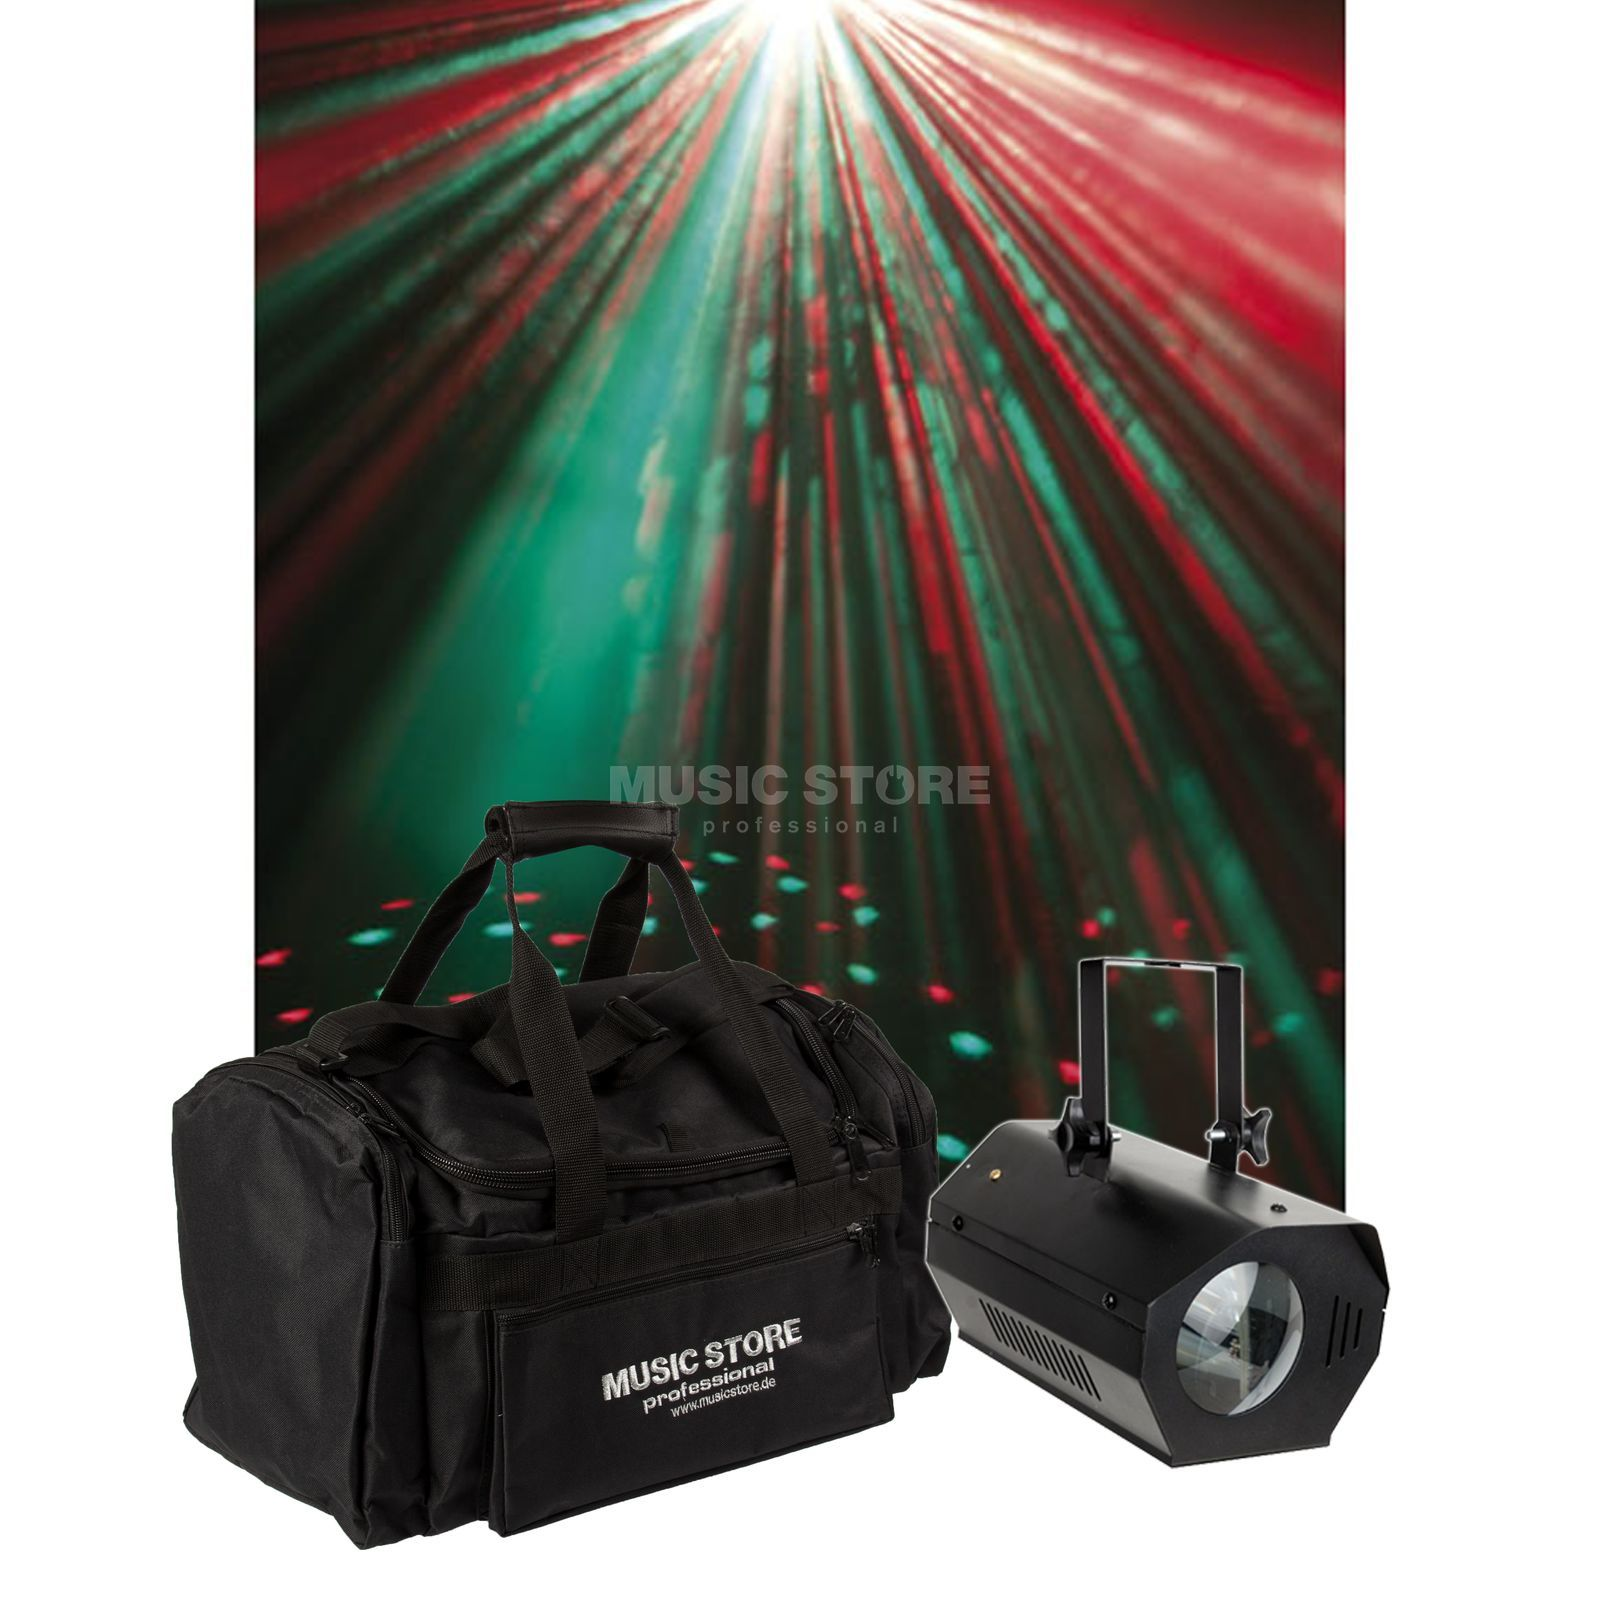 Showtec Scat Moon LED + Bag - Set Product Image